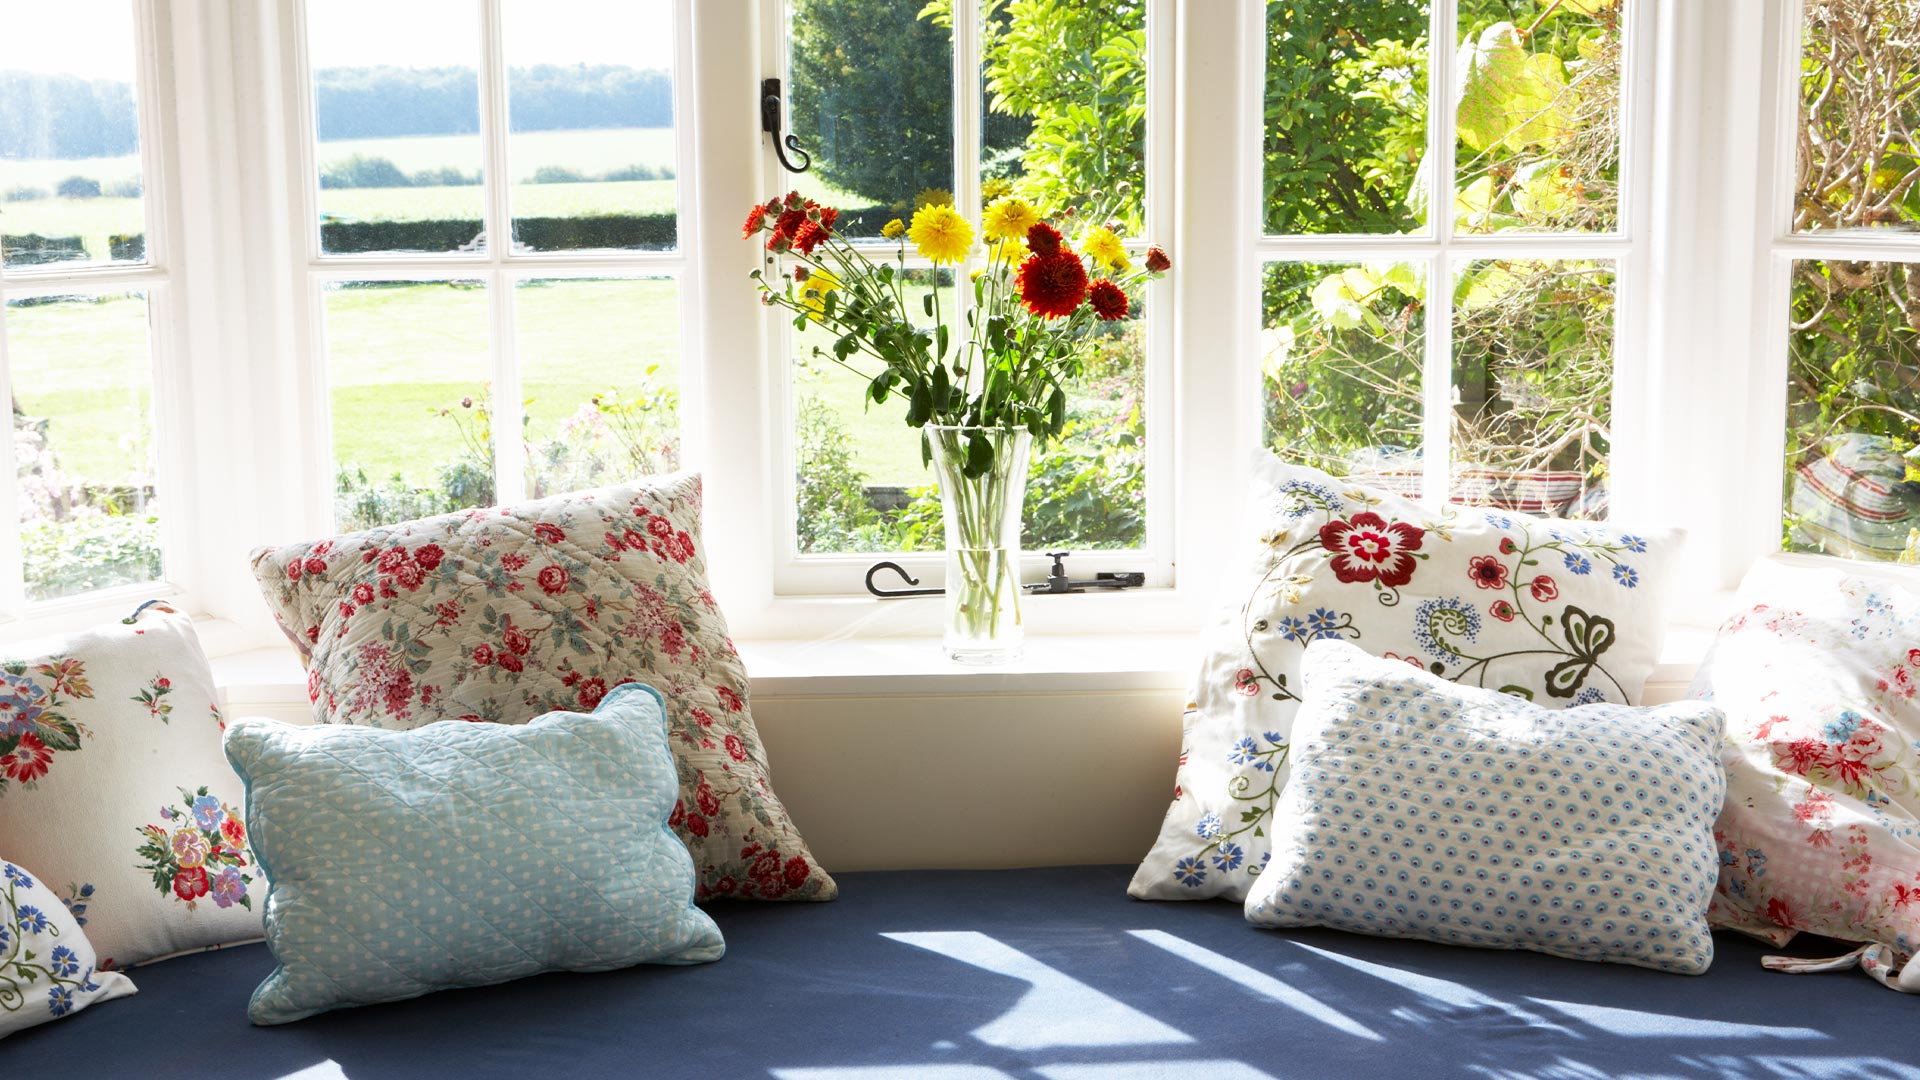 Picture of a lovely window seat and a window looking at flowers, bushes and a field.